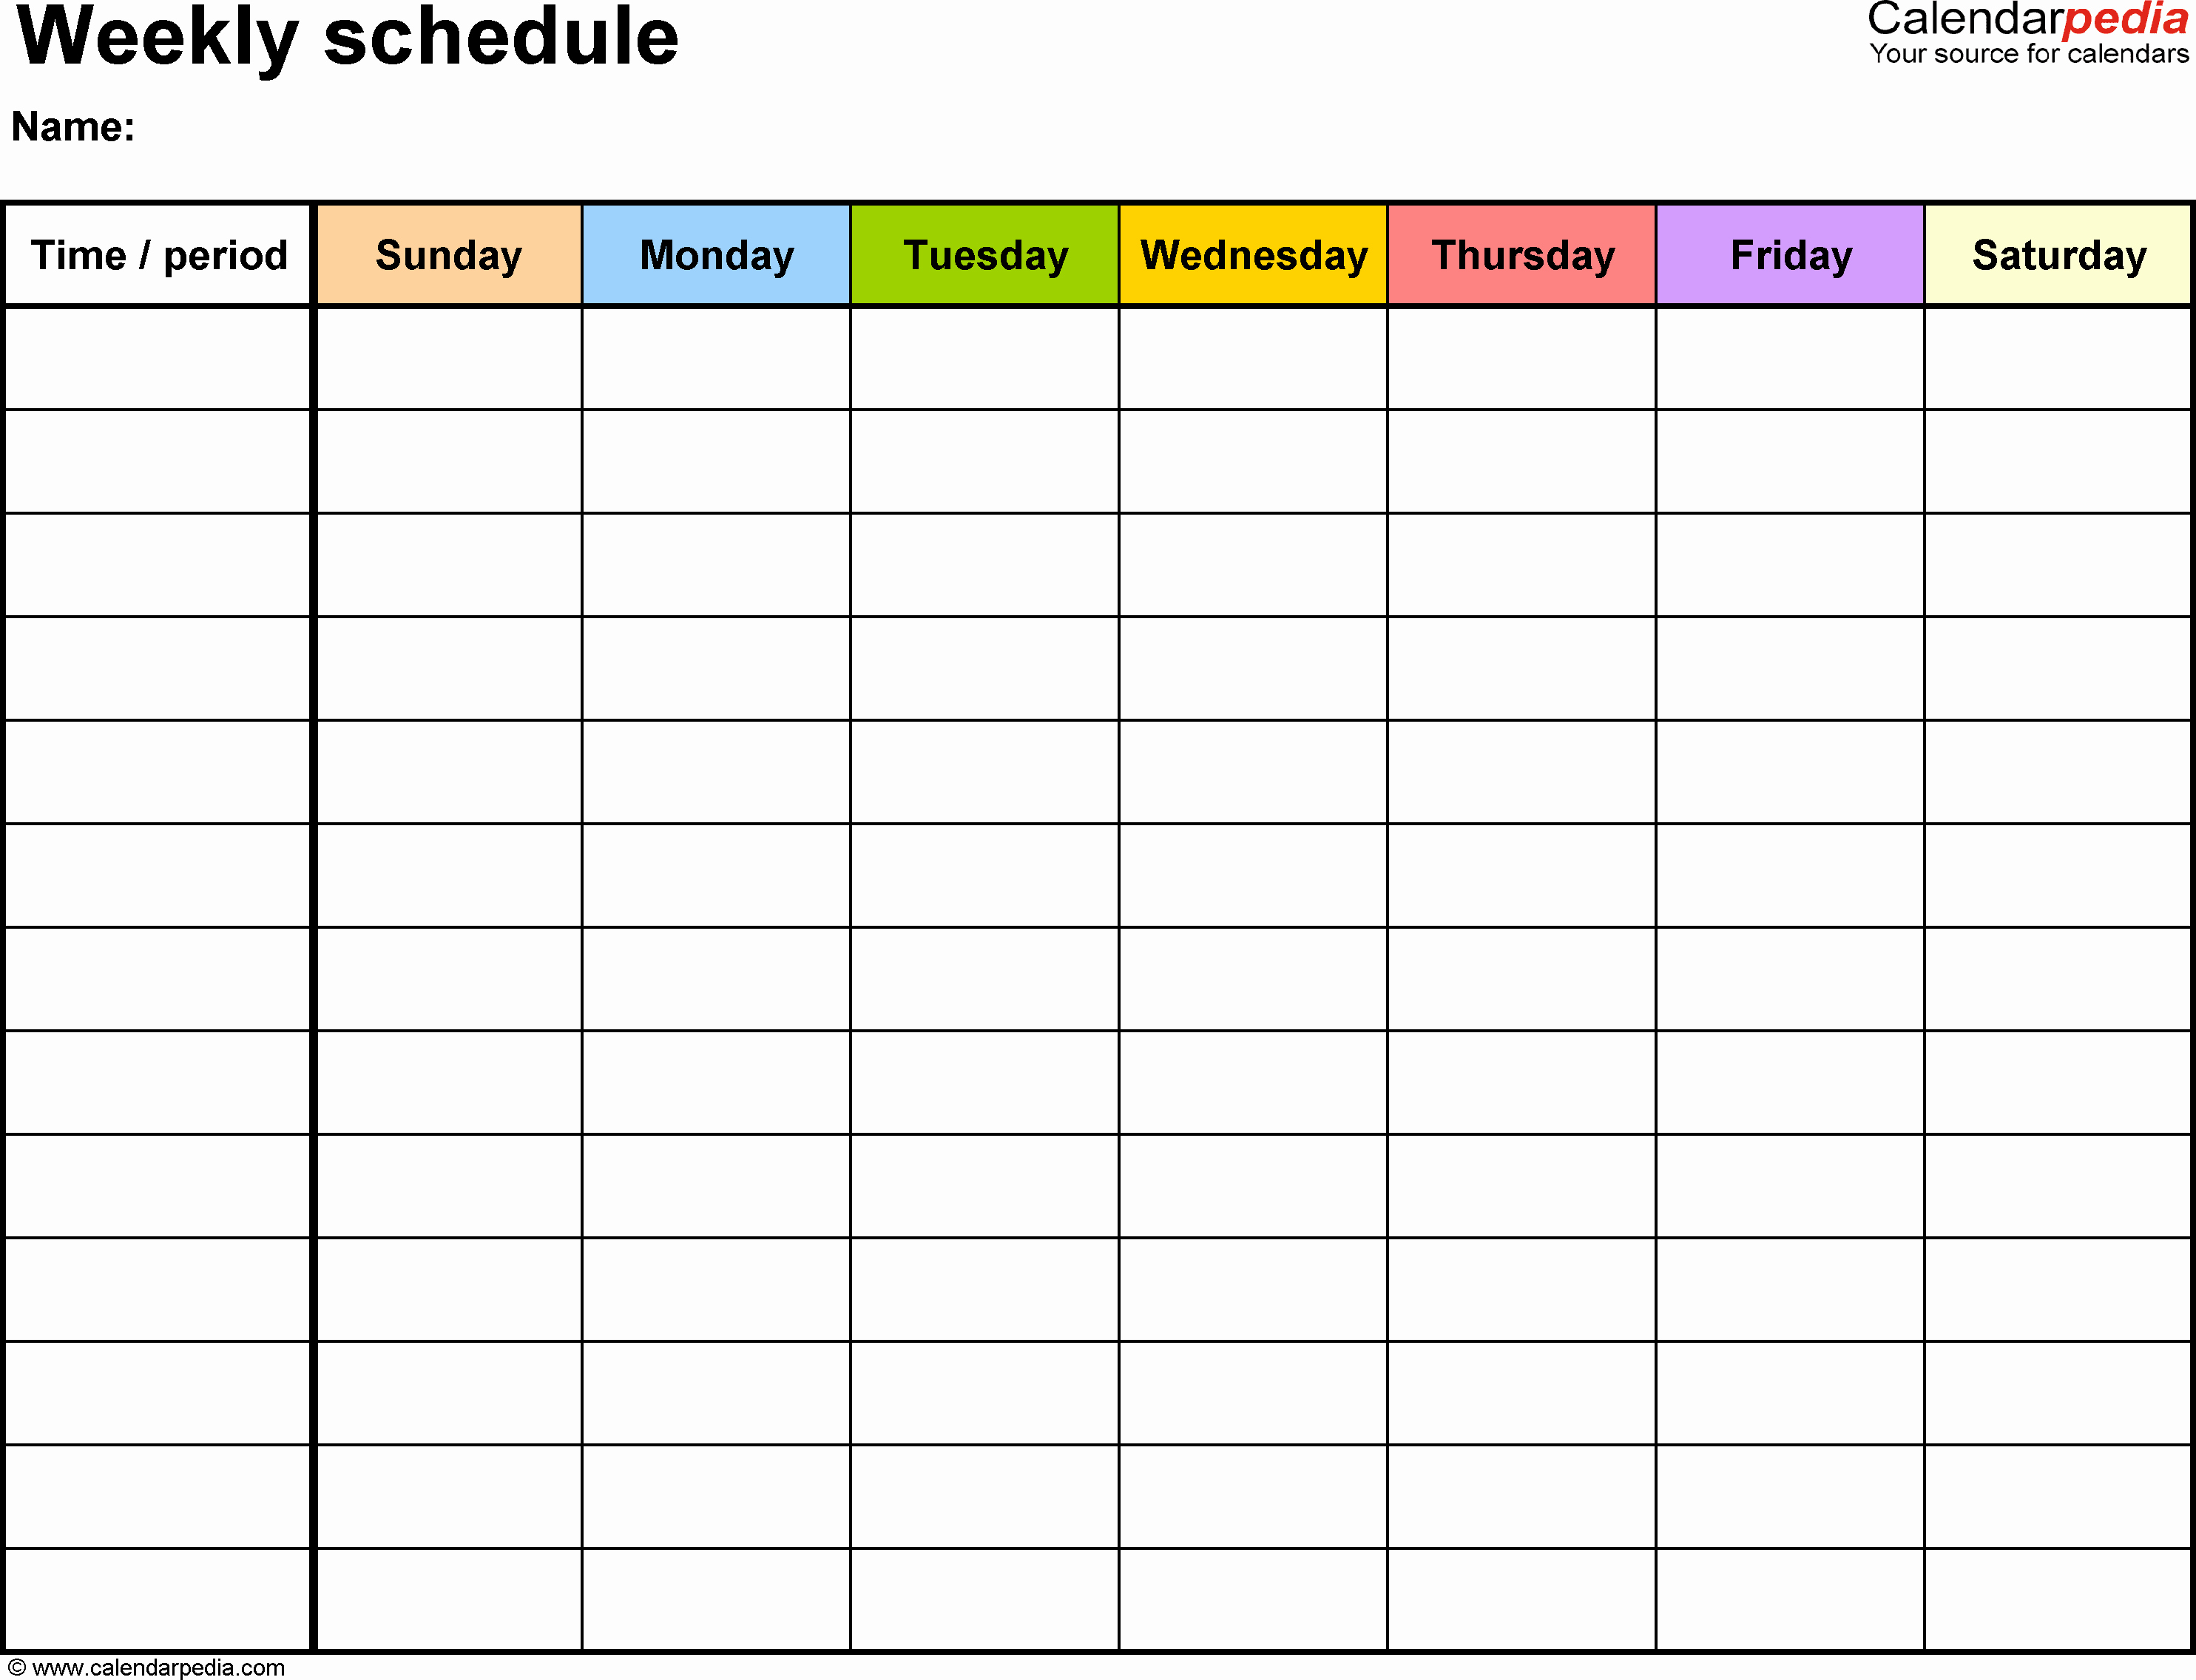 30 Day Calendar Template Beautiful Weekly Schedule Template for Word Version 13 Landscape 1